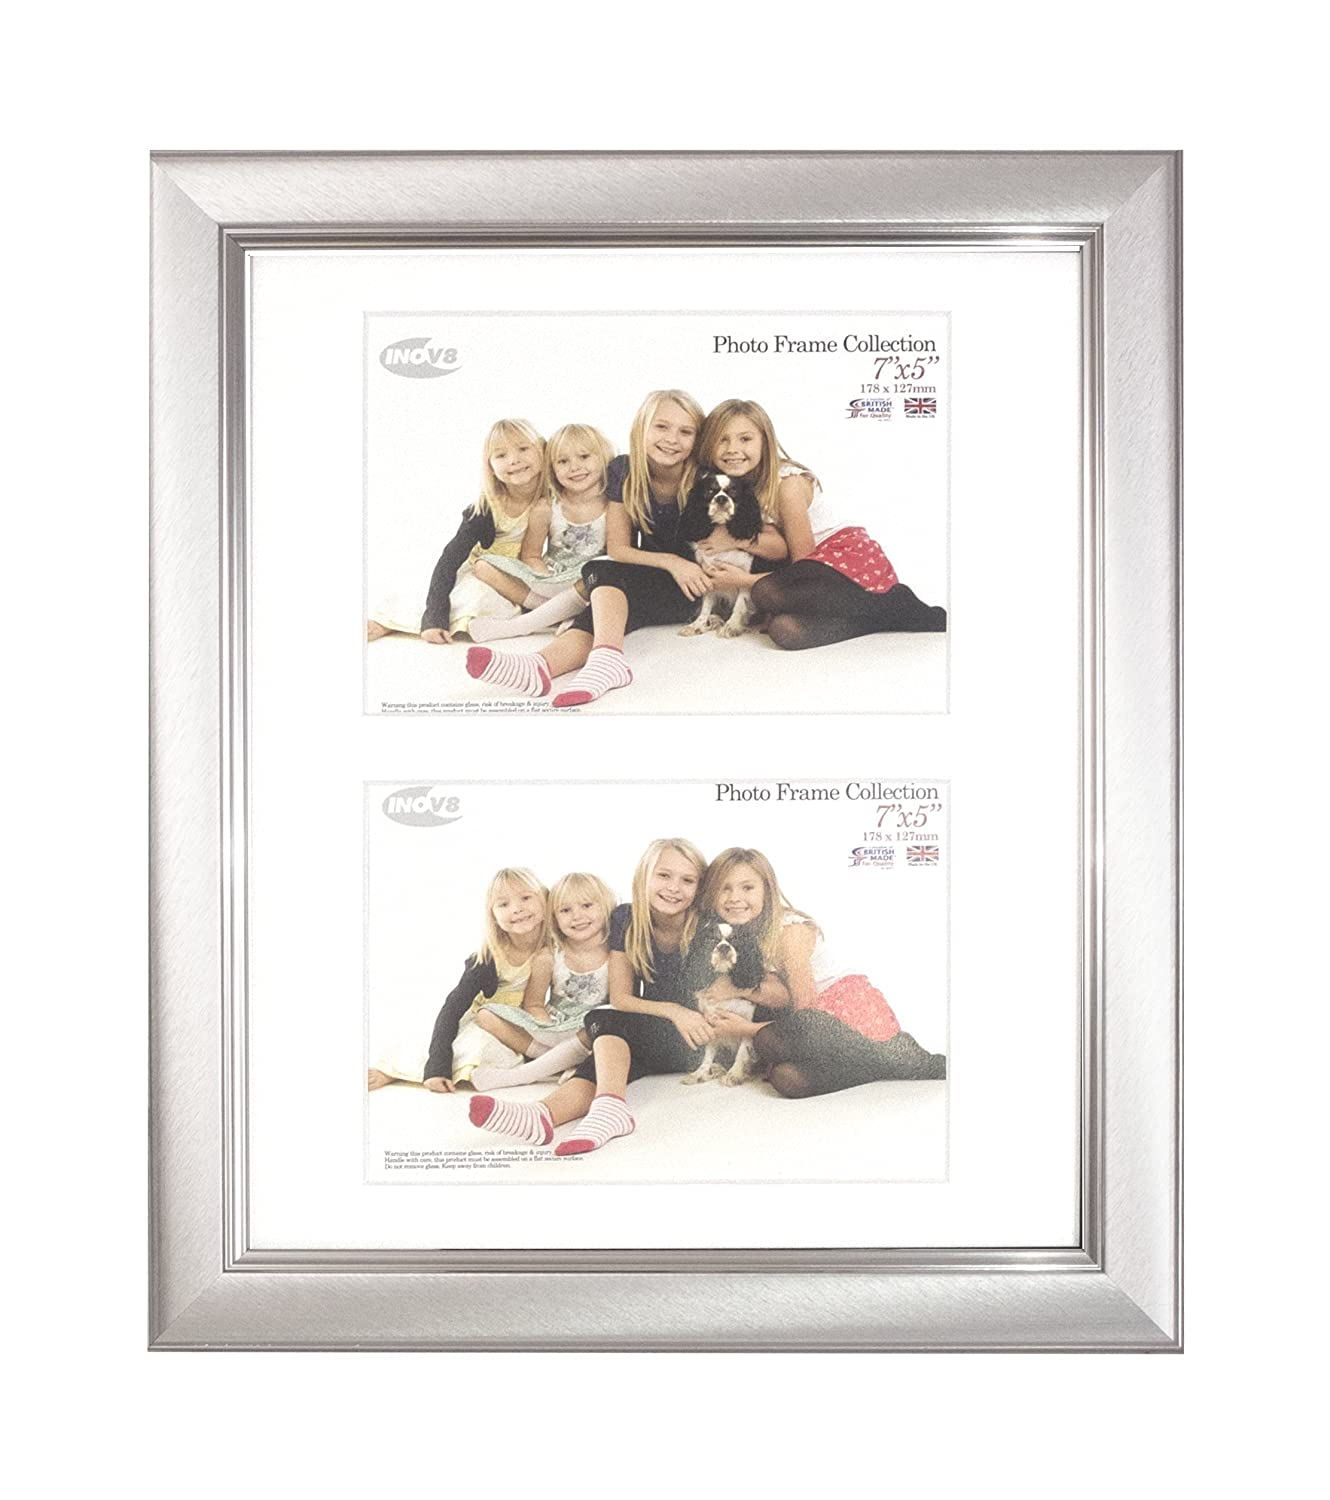 Brushed Small Black 12x10 Dual App 2x 7x5 Inch Inov8 British Made Picture//Photo Frame Pack of 2